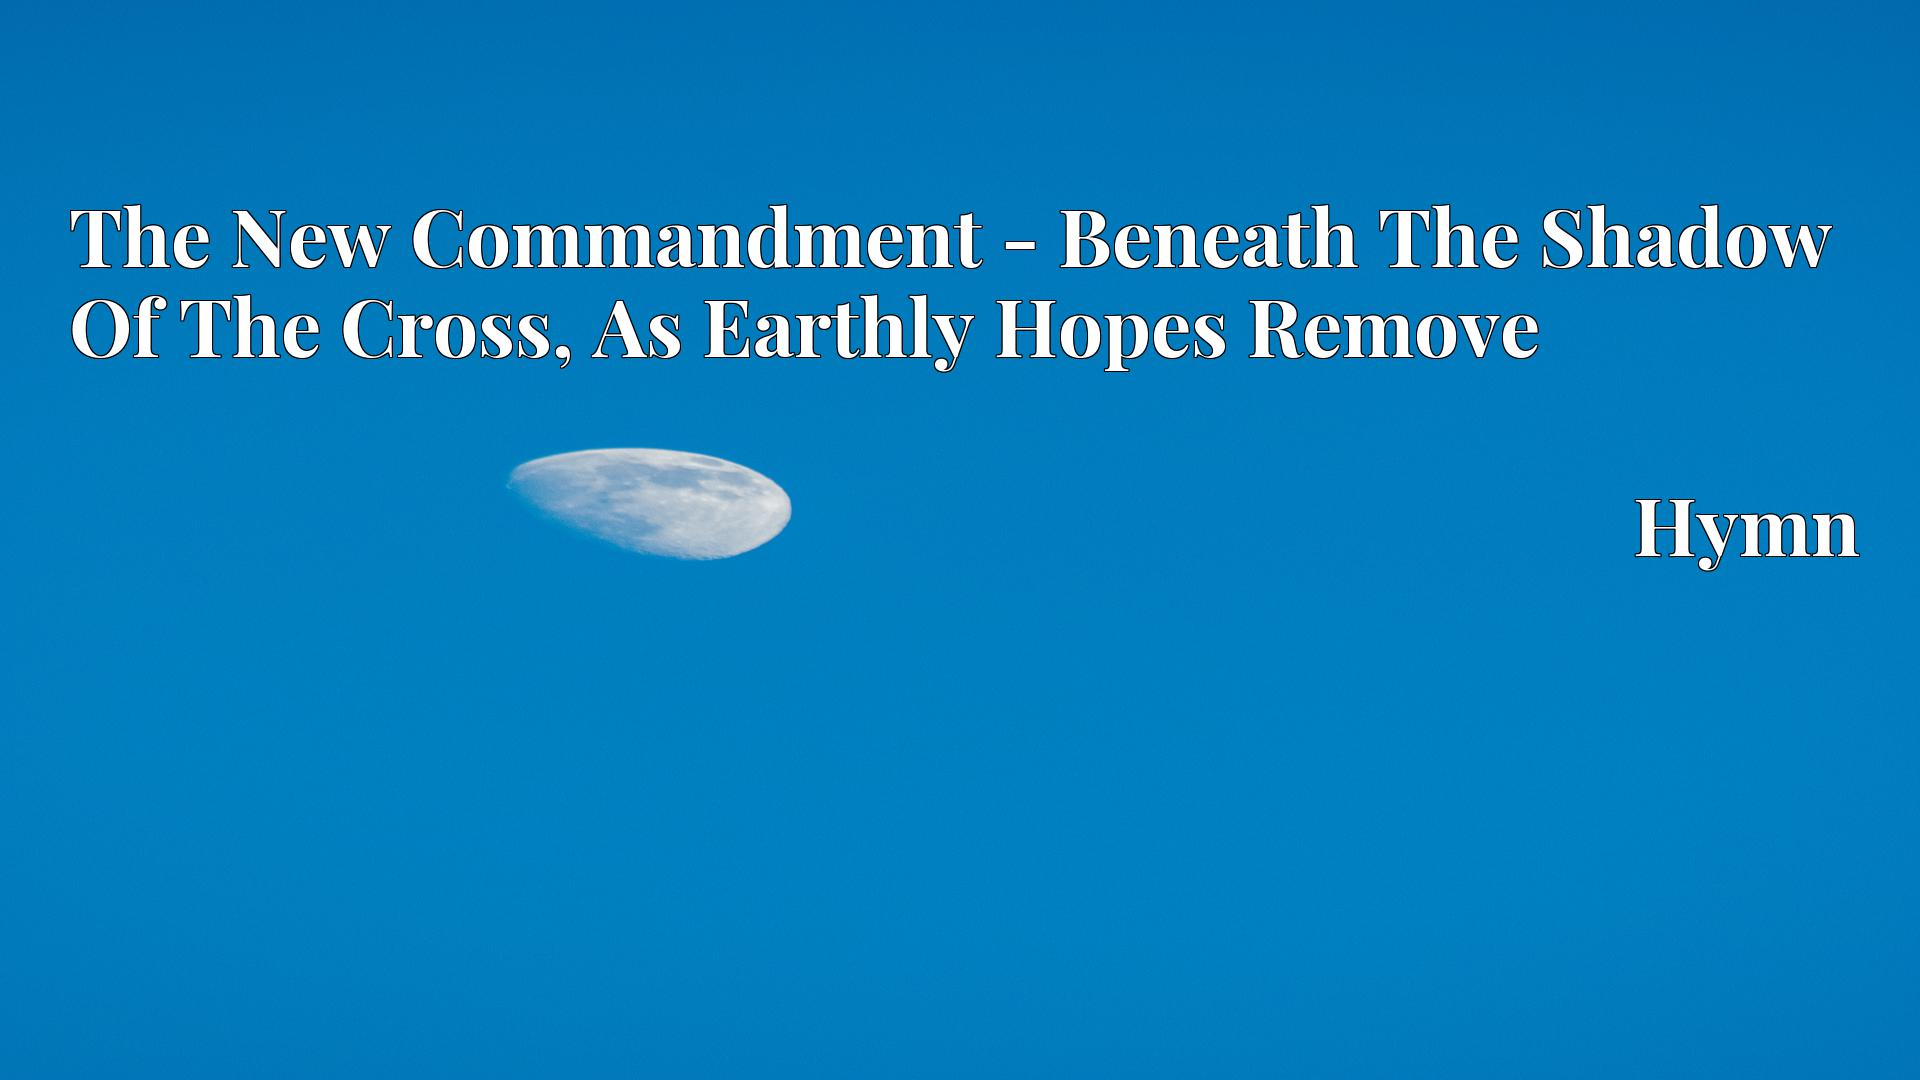 The New Commandment - Beneath The Shadow Of The Cross, As Earthly Hopes Remove - Hymn